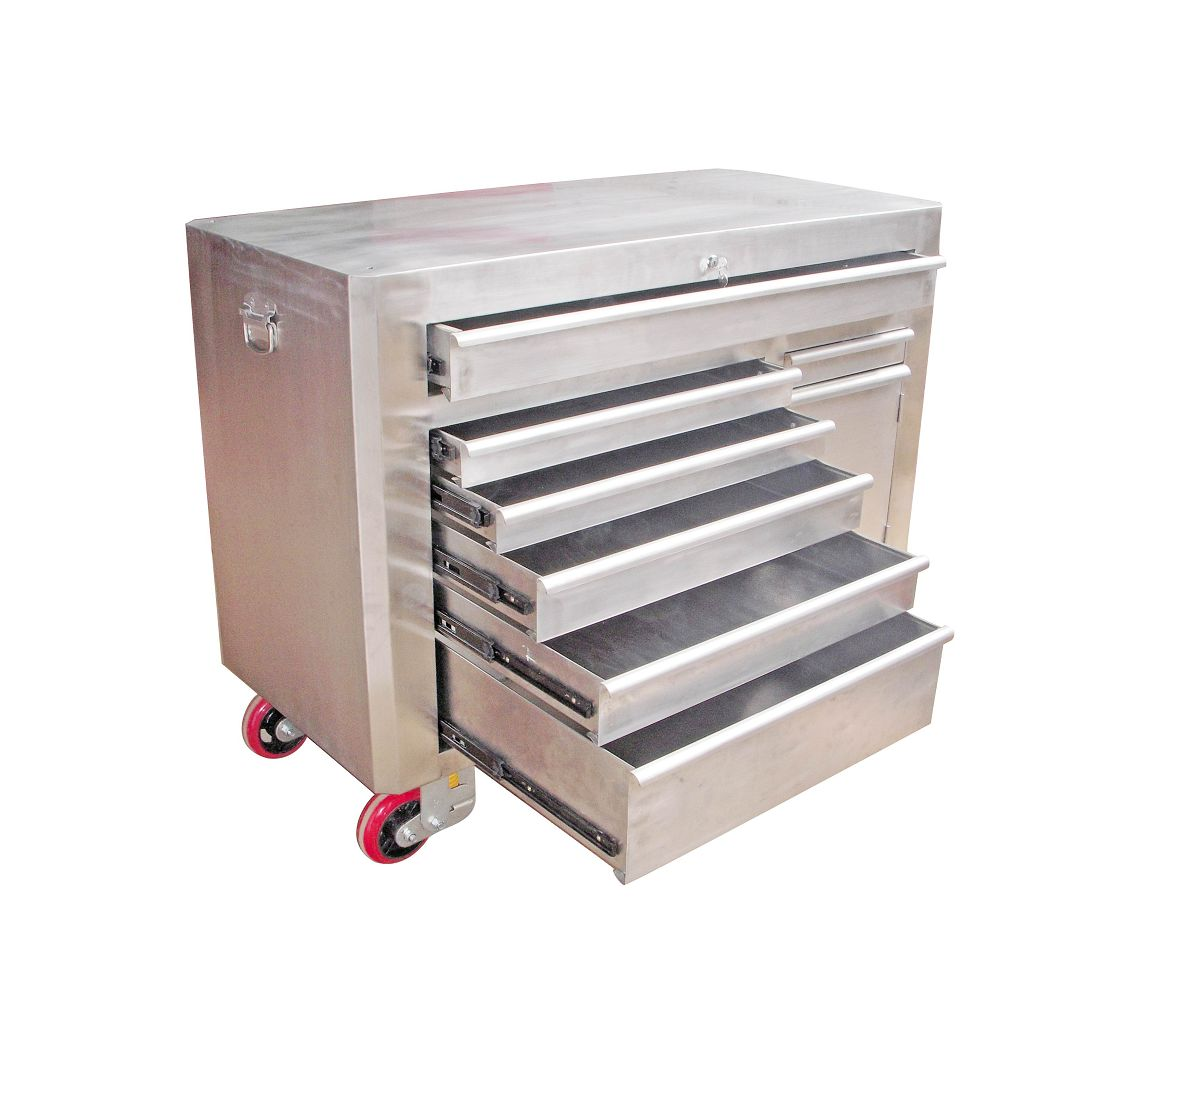 Stainless steel tool box